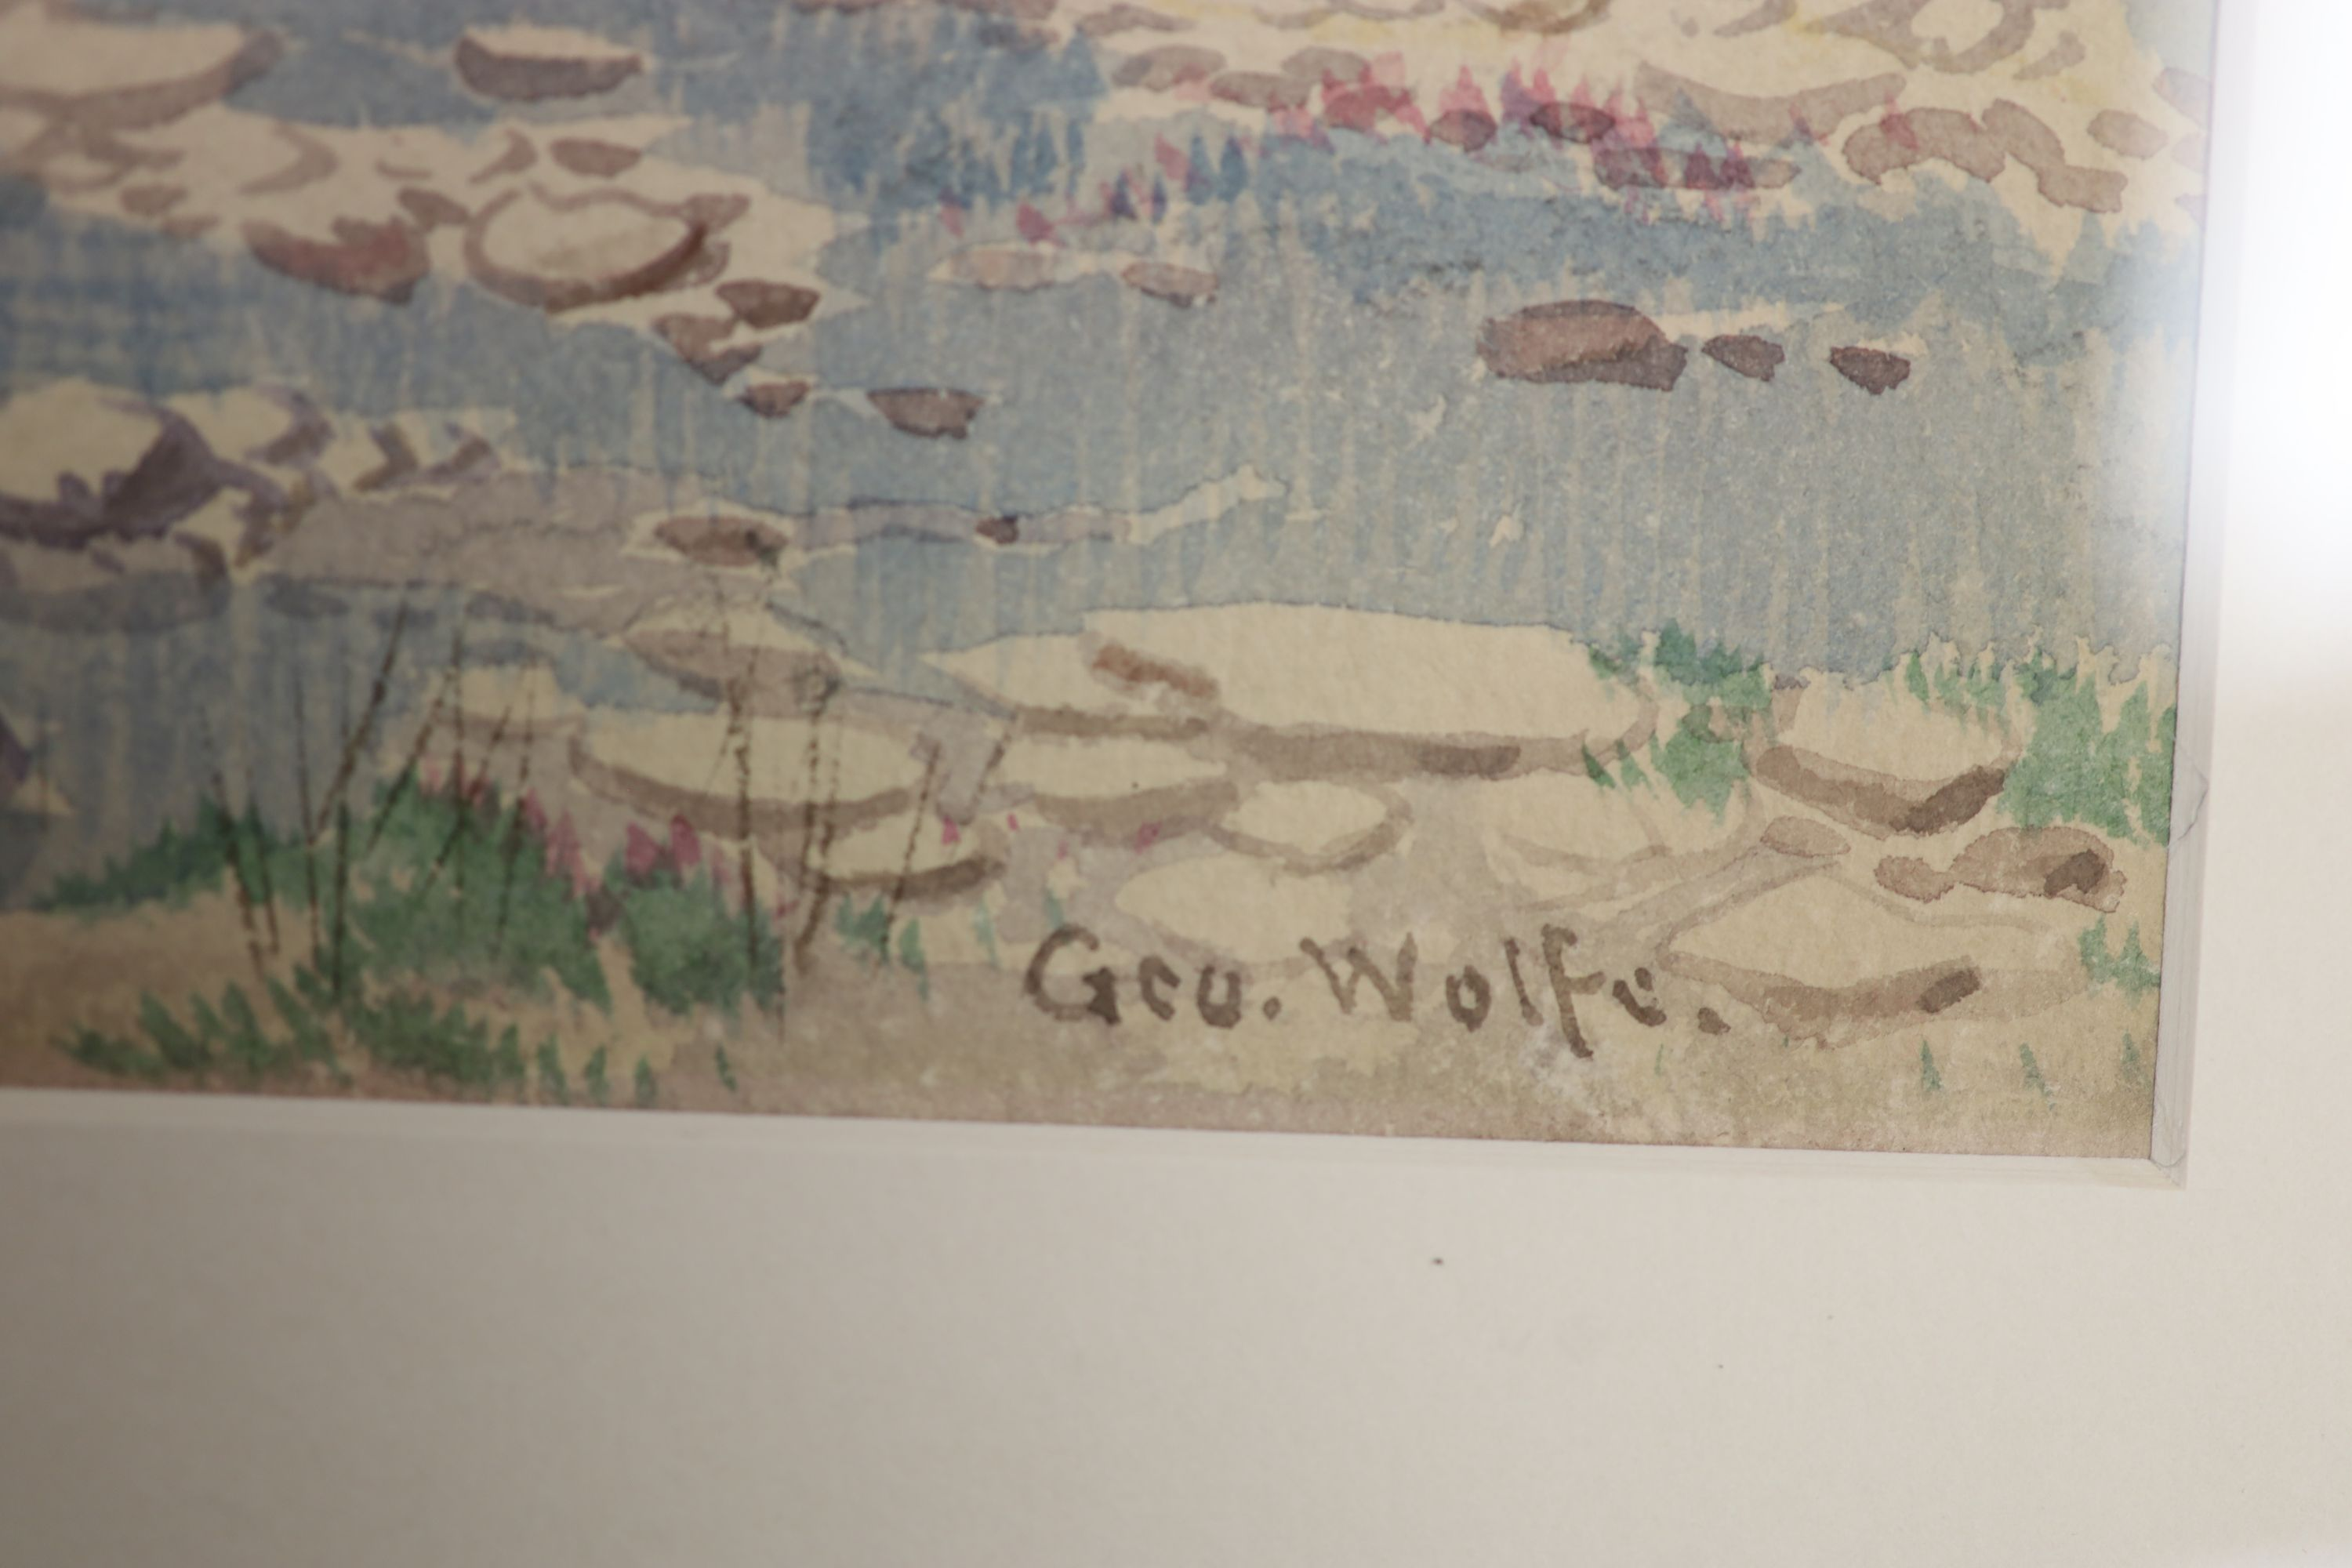 George Wolfe (1834-1890), watercolour, River landscape with weir, signed, 33 x 50cm - Image 3 of 3